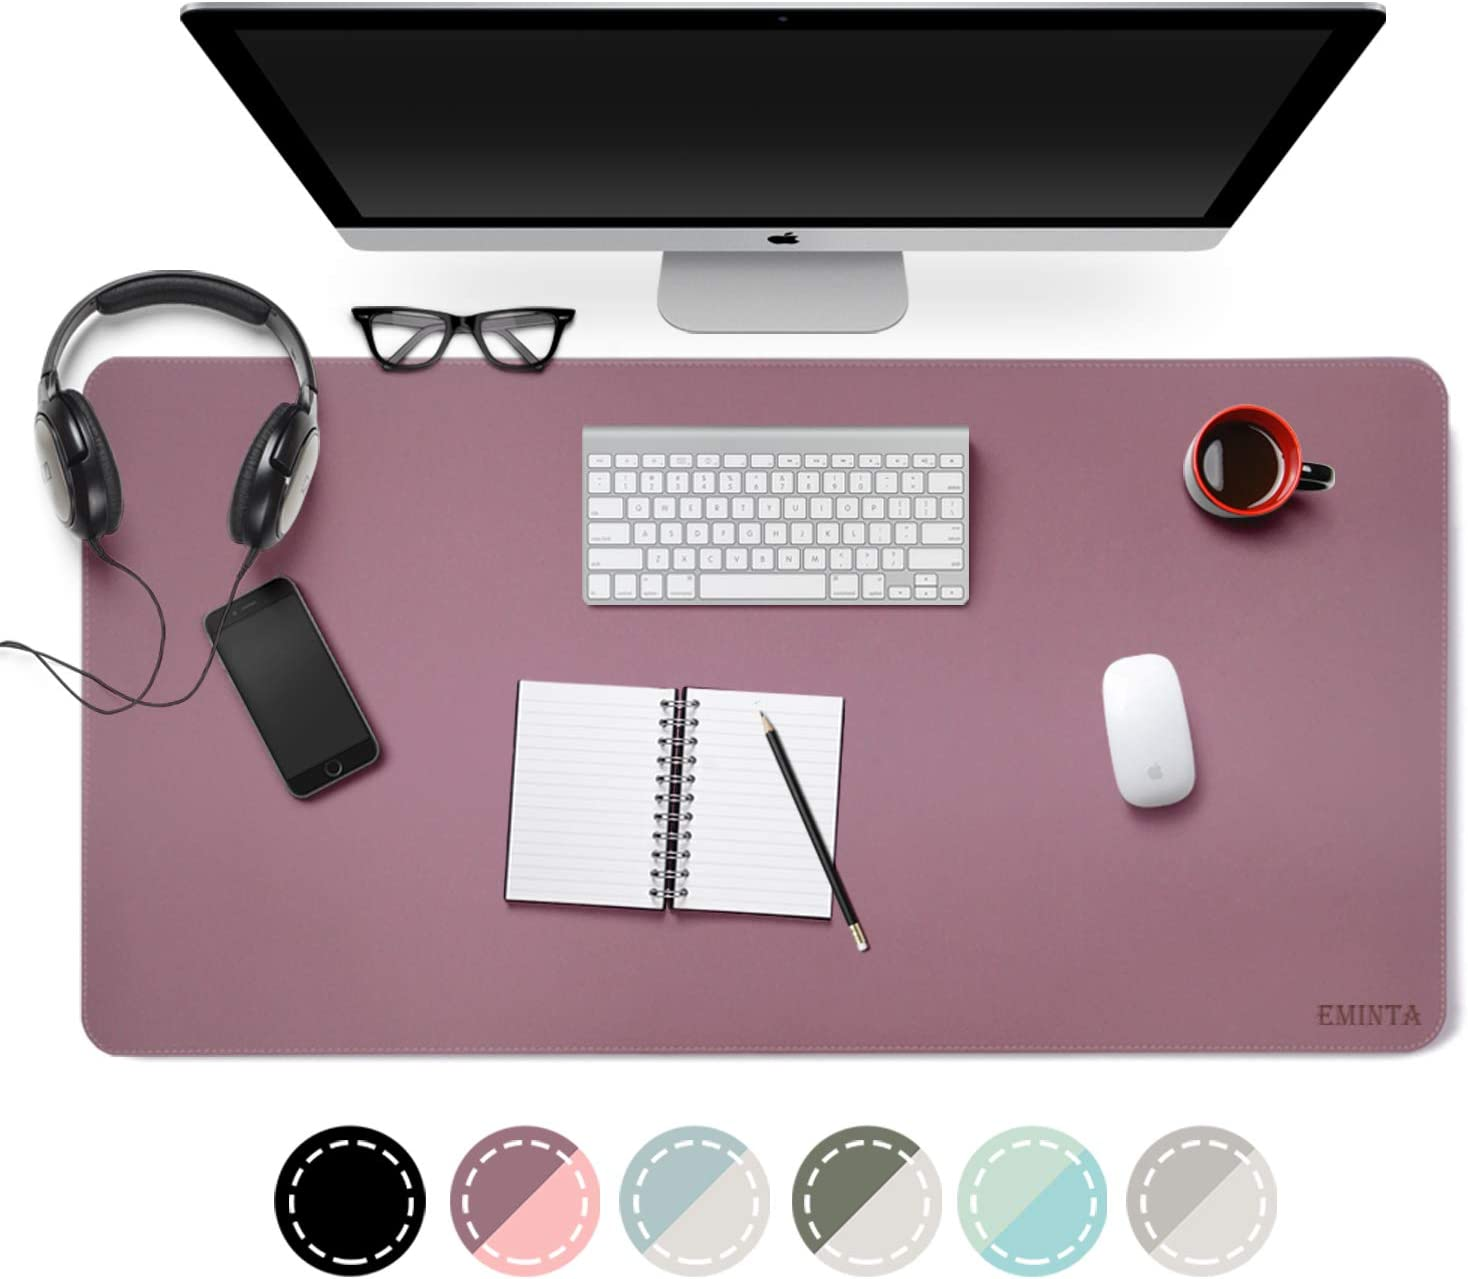 "Dual Sided PU Leather Desk Pad, 2019 Upgrade Sewing Edge Office Desk Mat, Waterproof Desk Blotter Protector, Desk Writing Mat Mouse Pad (Purple/Pink, 31.5"" x 15.7"")"